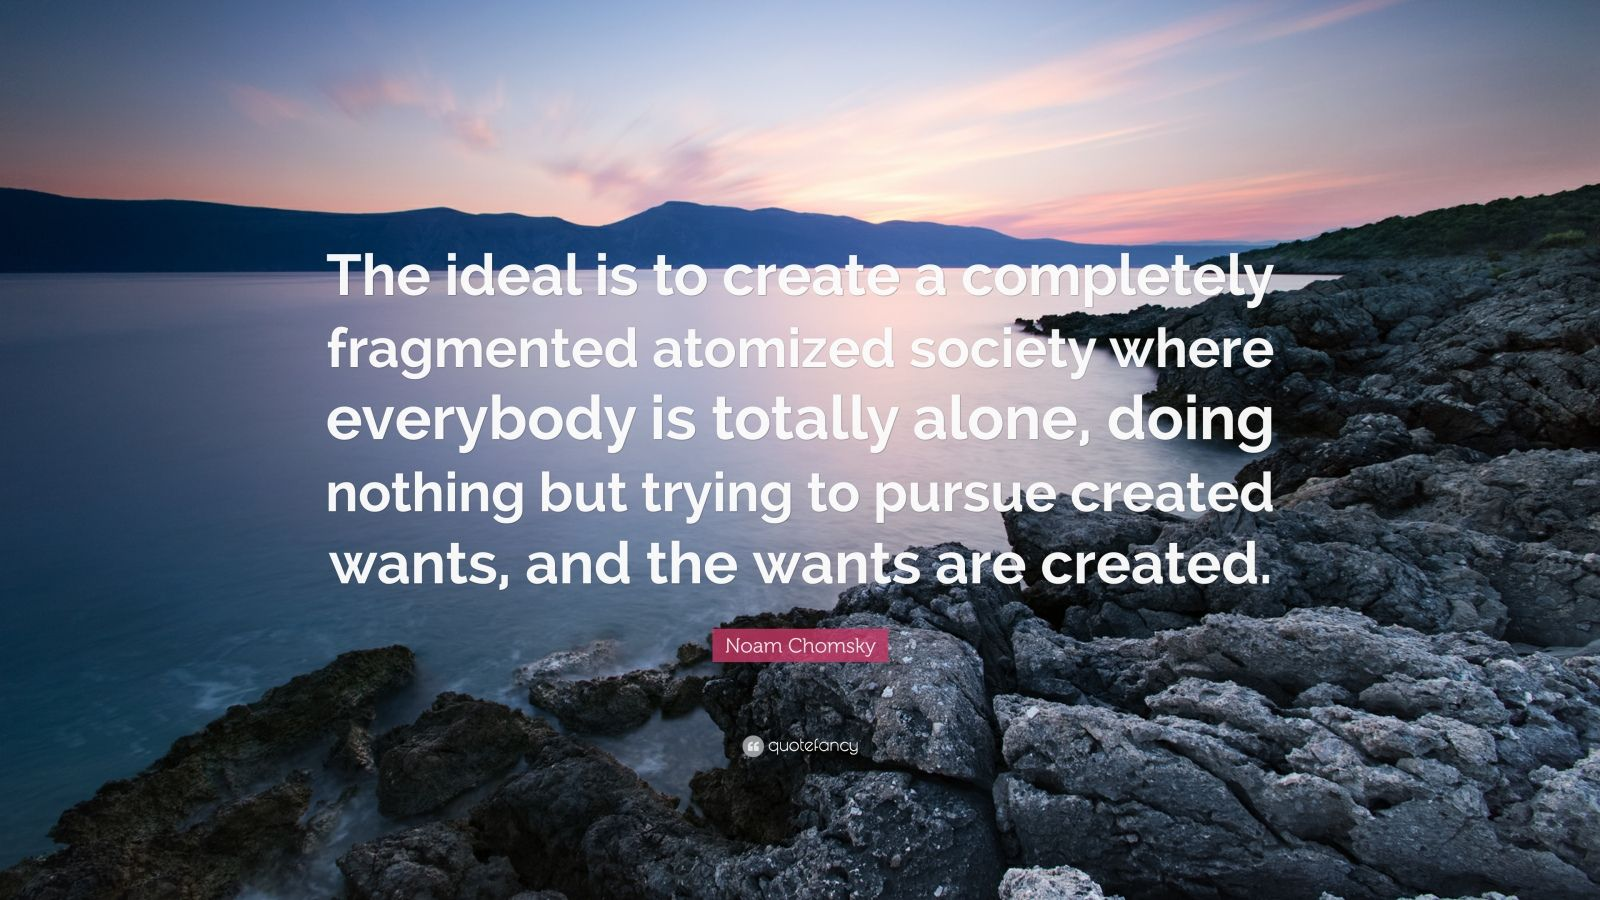 """Noam Chomsky Quote: """"The ideal is to create a completely fragmented atomized society where everybody is totally alone, doing nothing but trying to pursue created wants, and the wants are created."""""""